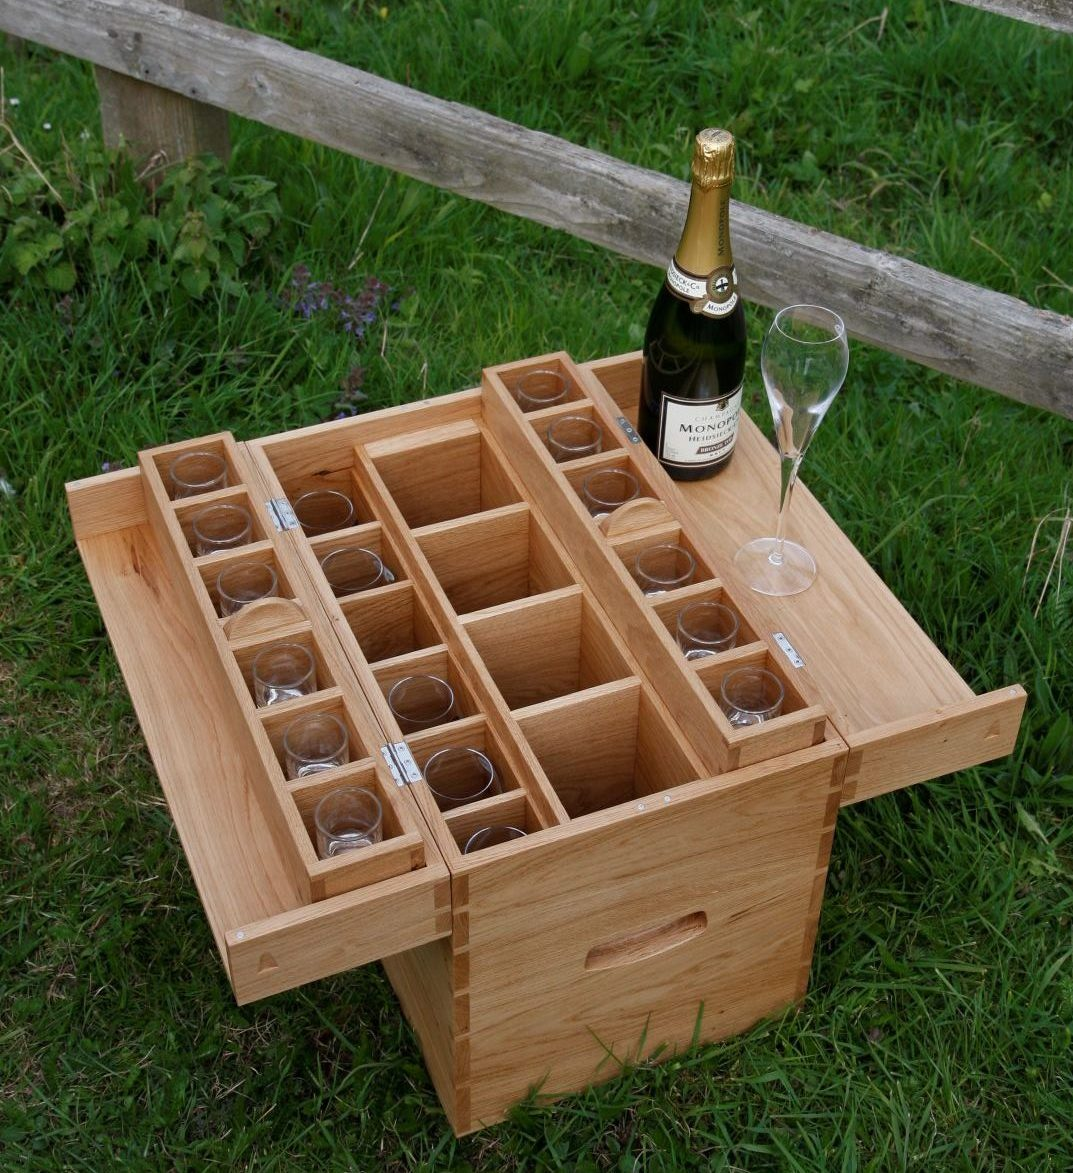 Drinks boxes for picnics or shooting